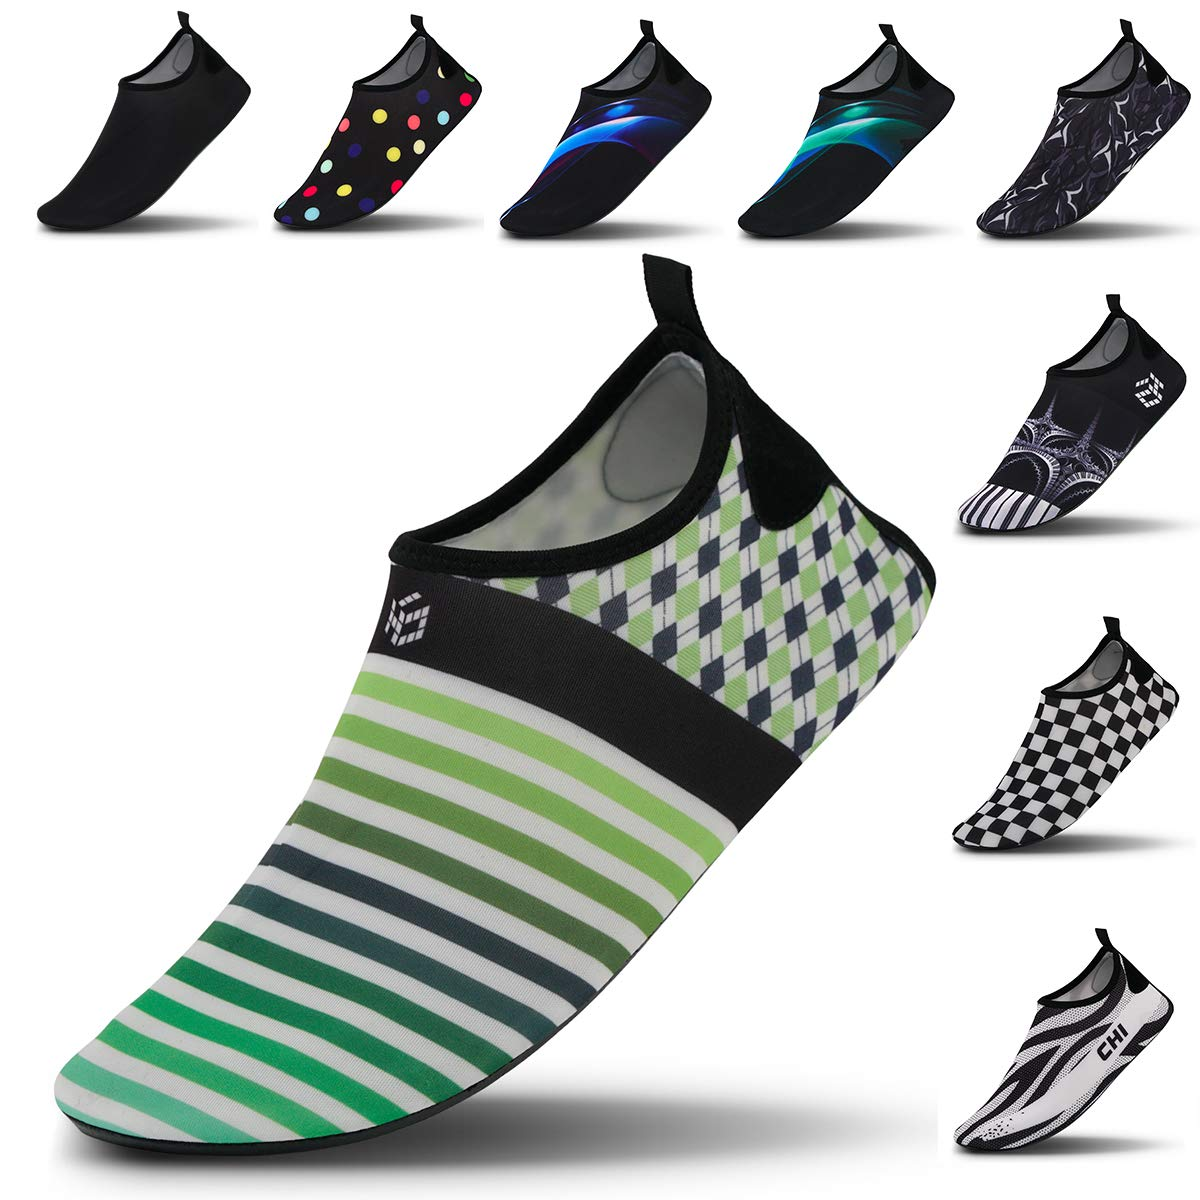 bf5087339bf Vaincre Womens and Mens Water Shoes Barefoot Quick-Dry Aqua Socks for Beach  Swim Surf Yoga Exercise (Men:11-12)